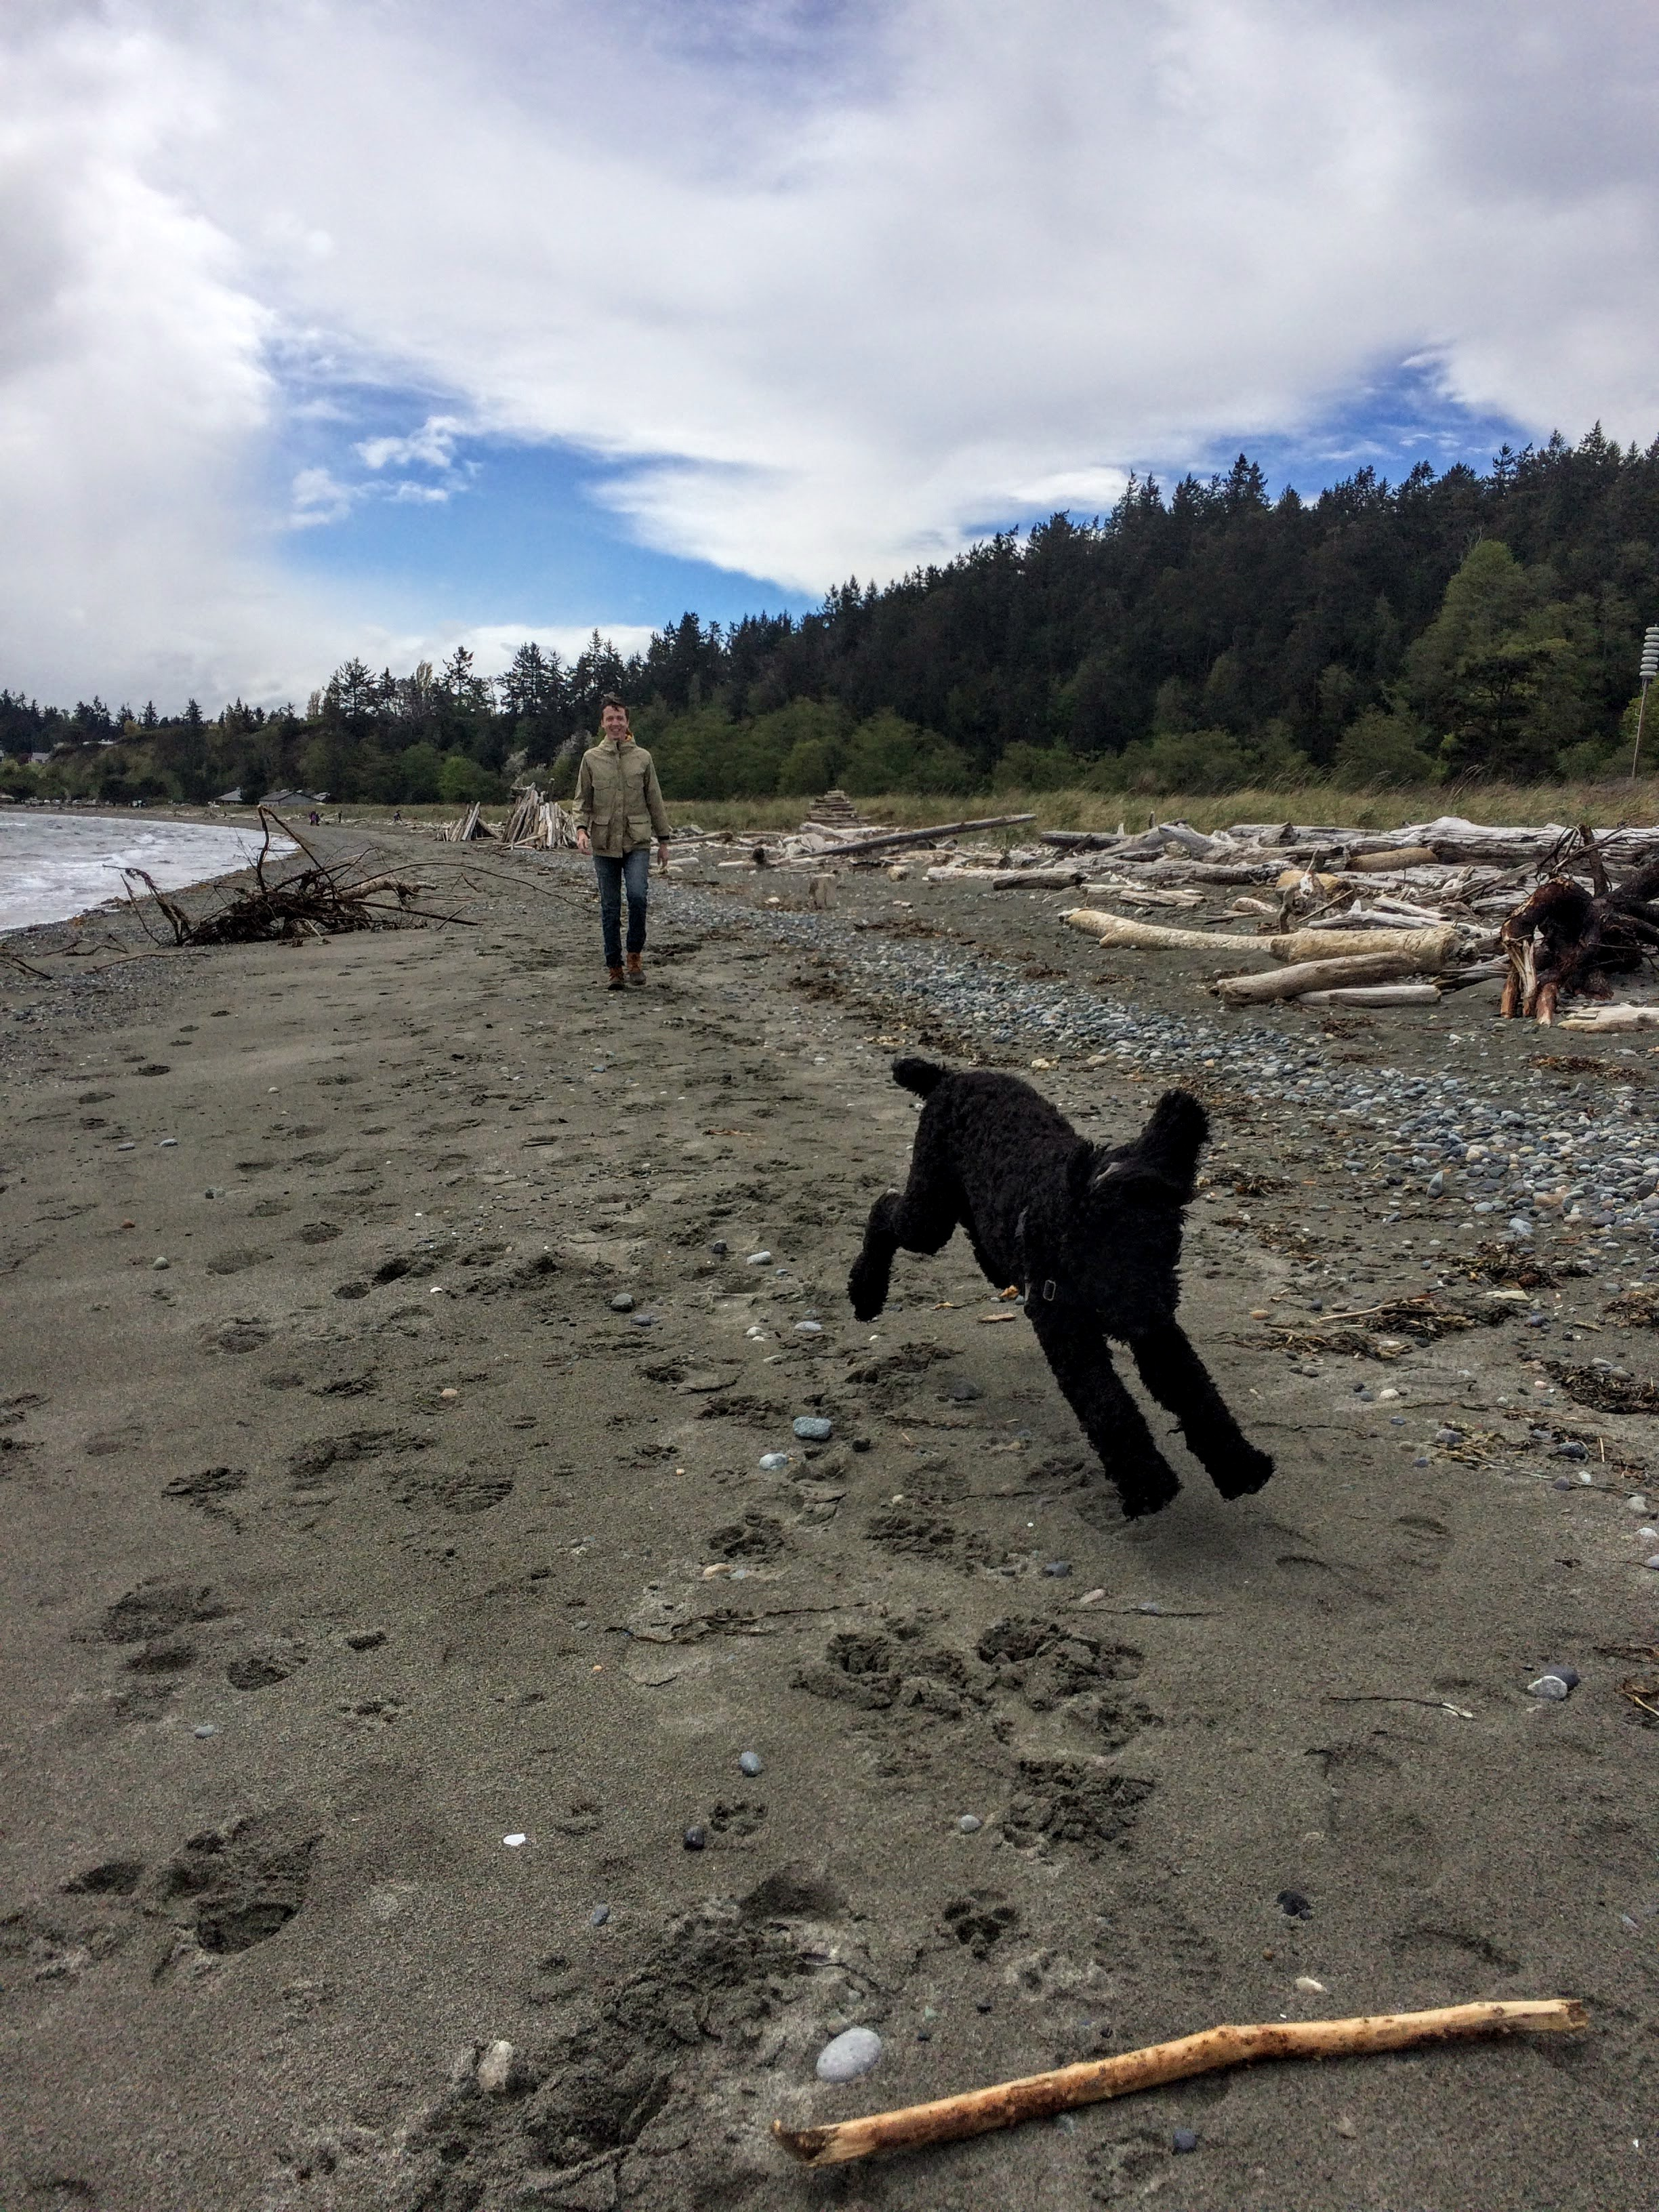 Fetch on the sandy beach at Fort Worden. One of our favorite places!